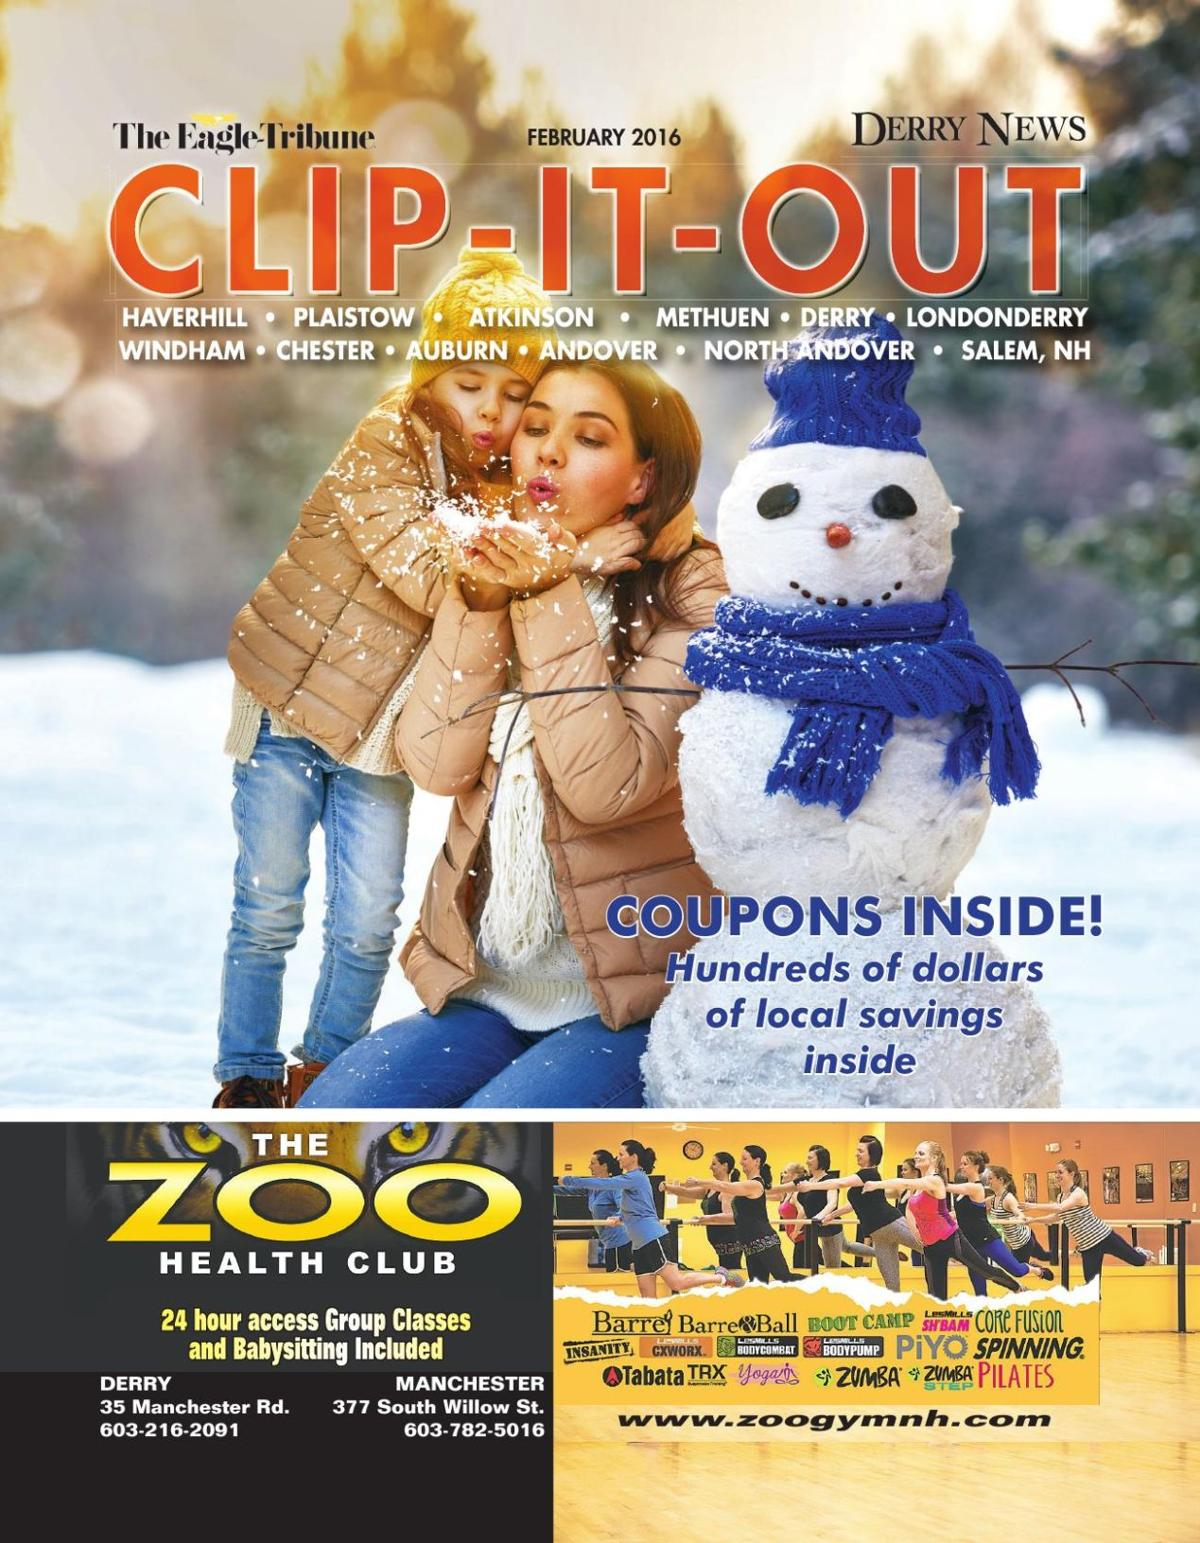 Clip-it-Out Coupon Book February 2016